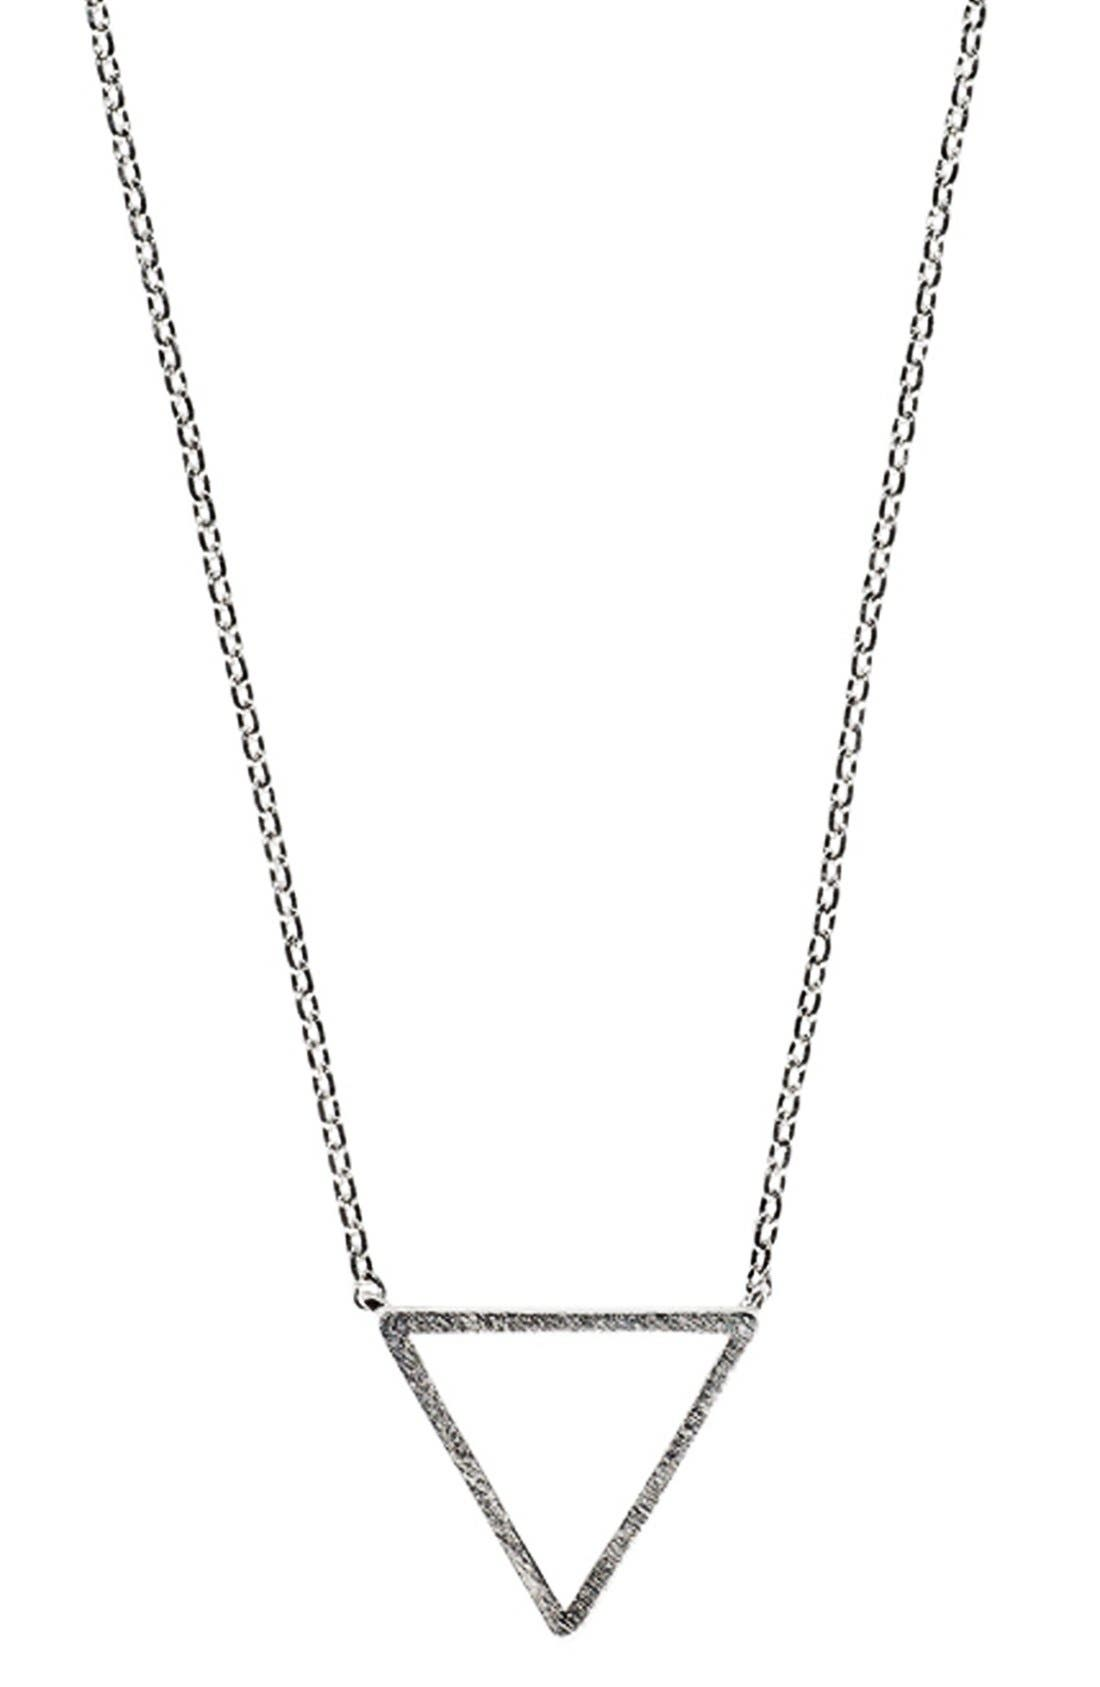 Main Image - Wanderlust + Co. Triangle Pendant Necklace